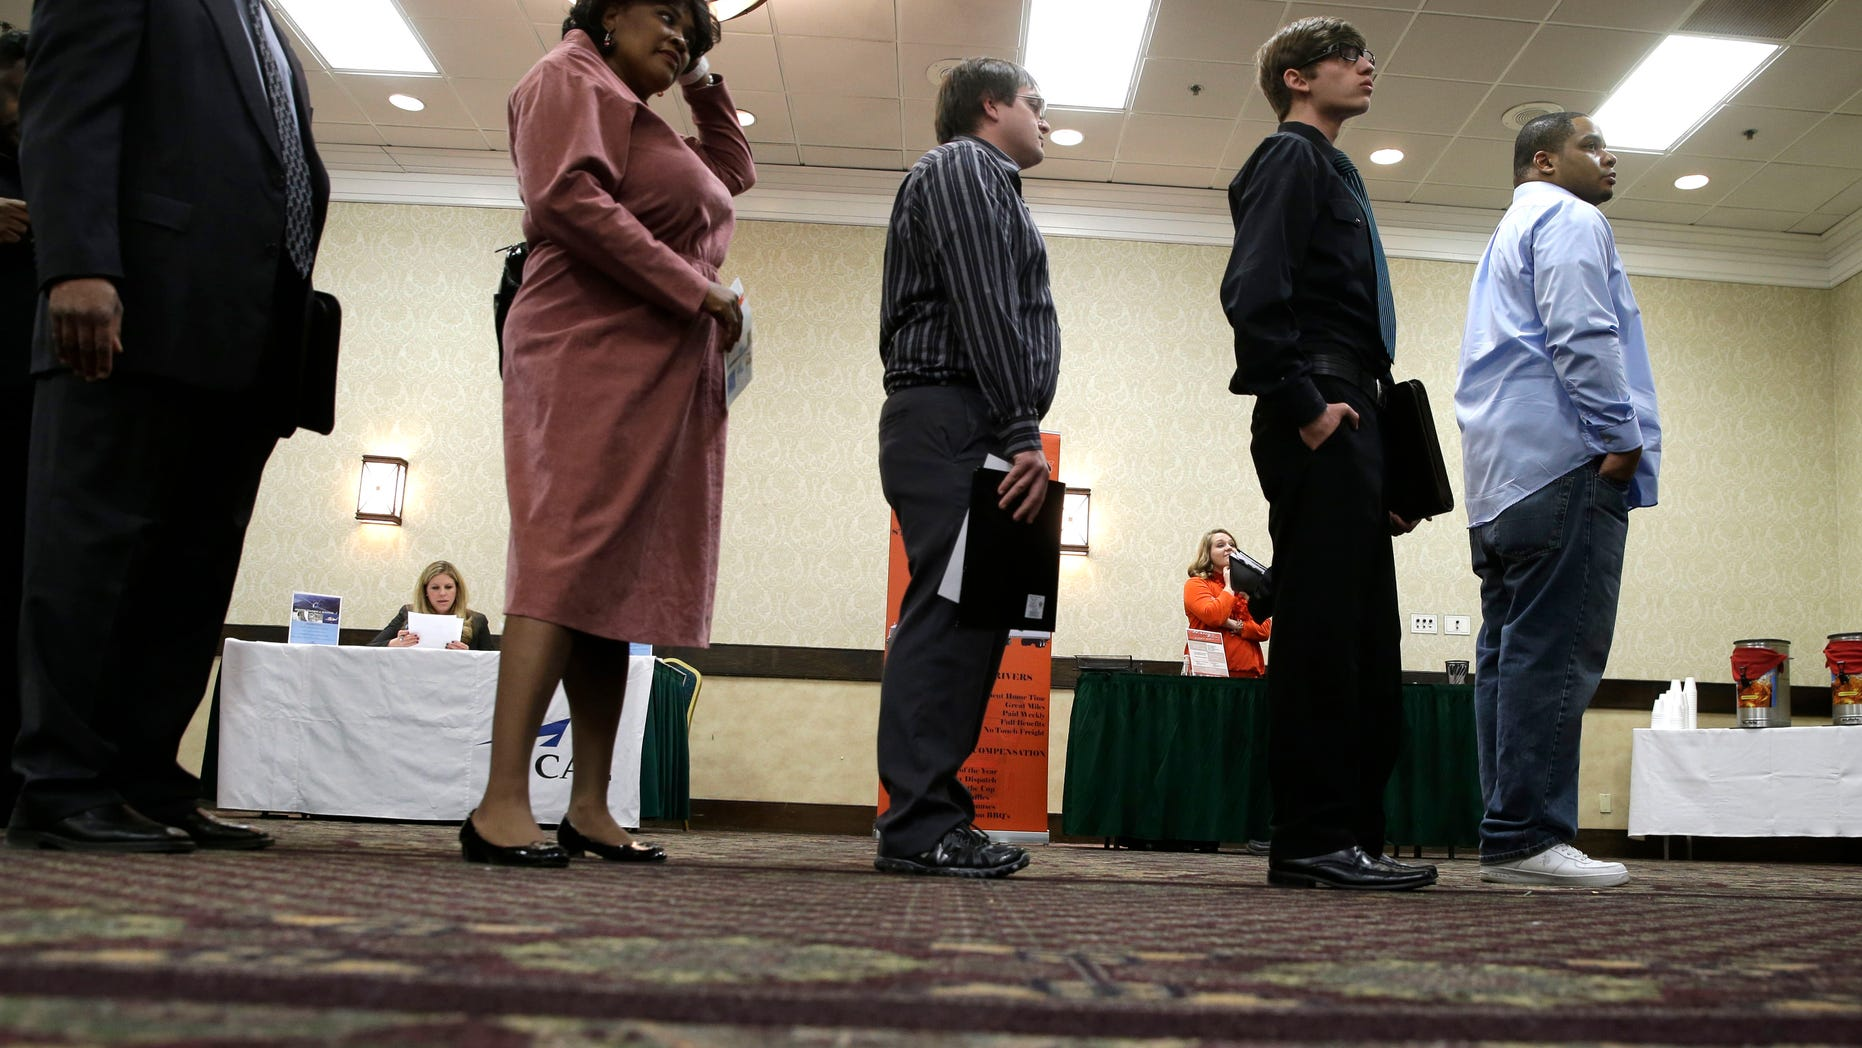 In this Wednesday, Jan. 22, 2014, photo, job seekers line up to meet a prospective employer at a career fair at a hotel in Dallas. Payroll processor ADP reports on job growth at U.S. companies in January on Wednesday, Feb. 5, 2014. (AP Photo/LM Otero)